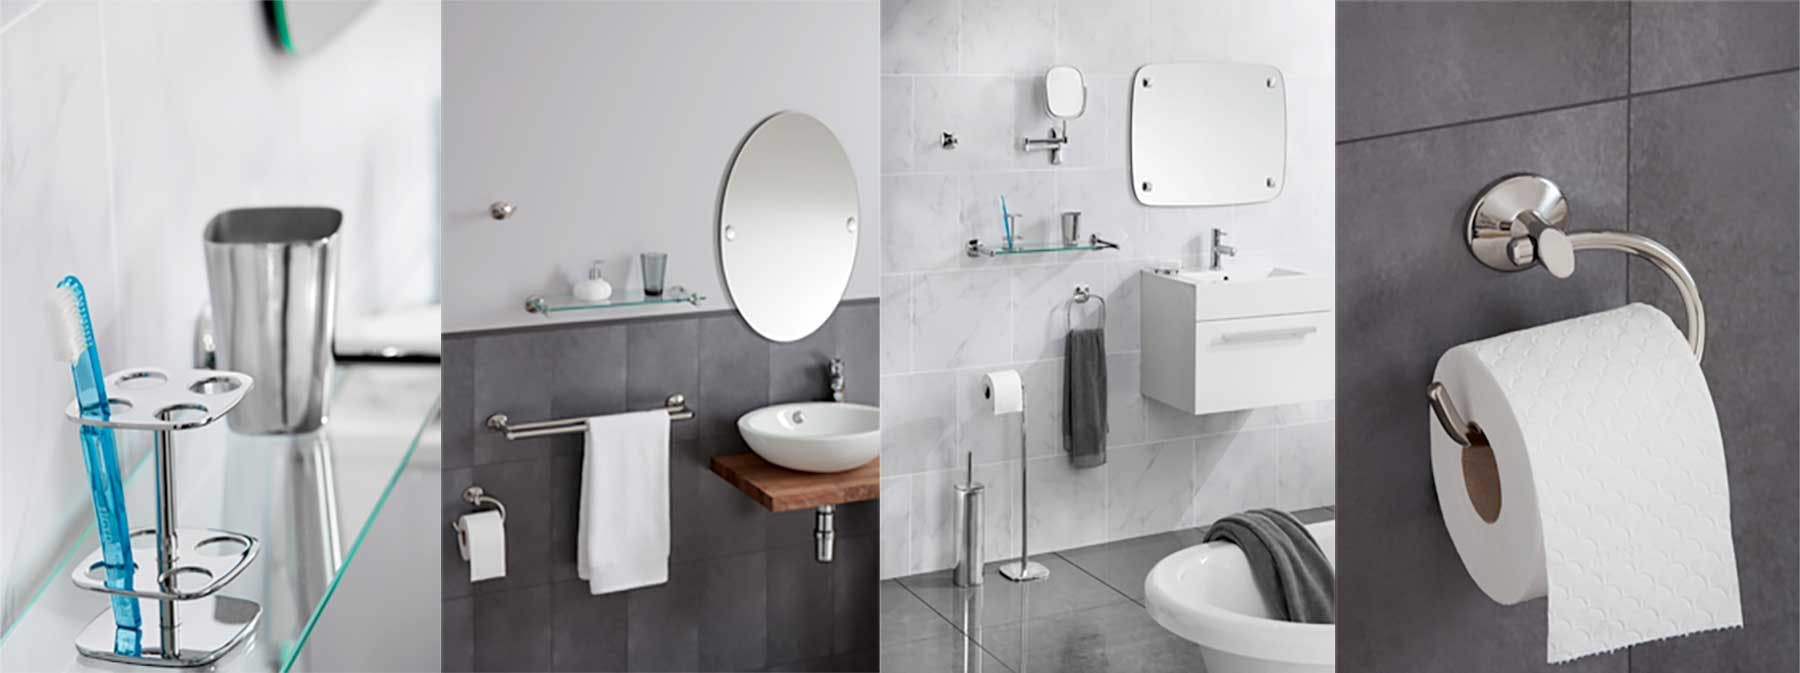 Refresh your bathroom with Robert Welch fittings and accessories...